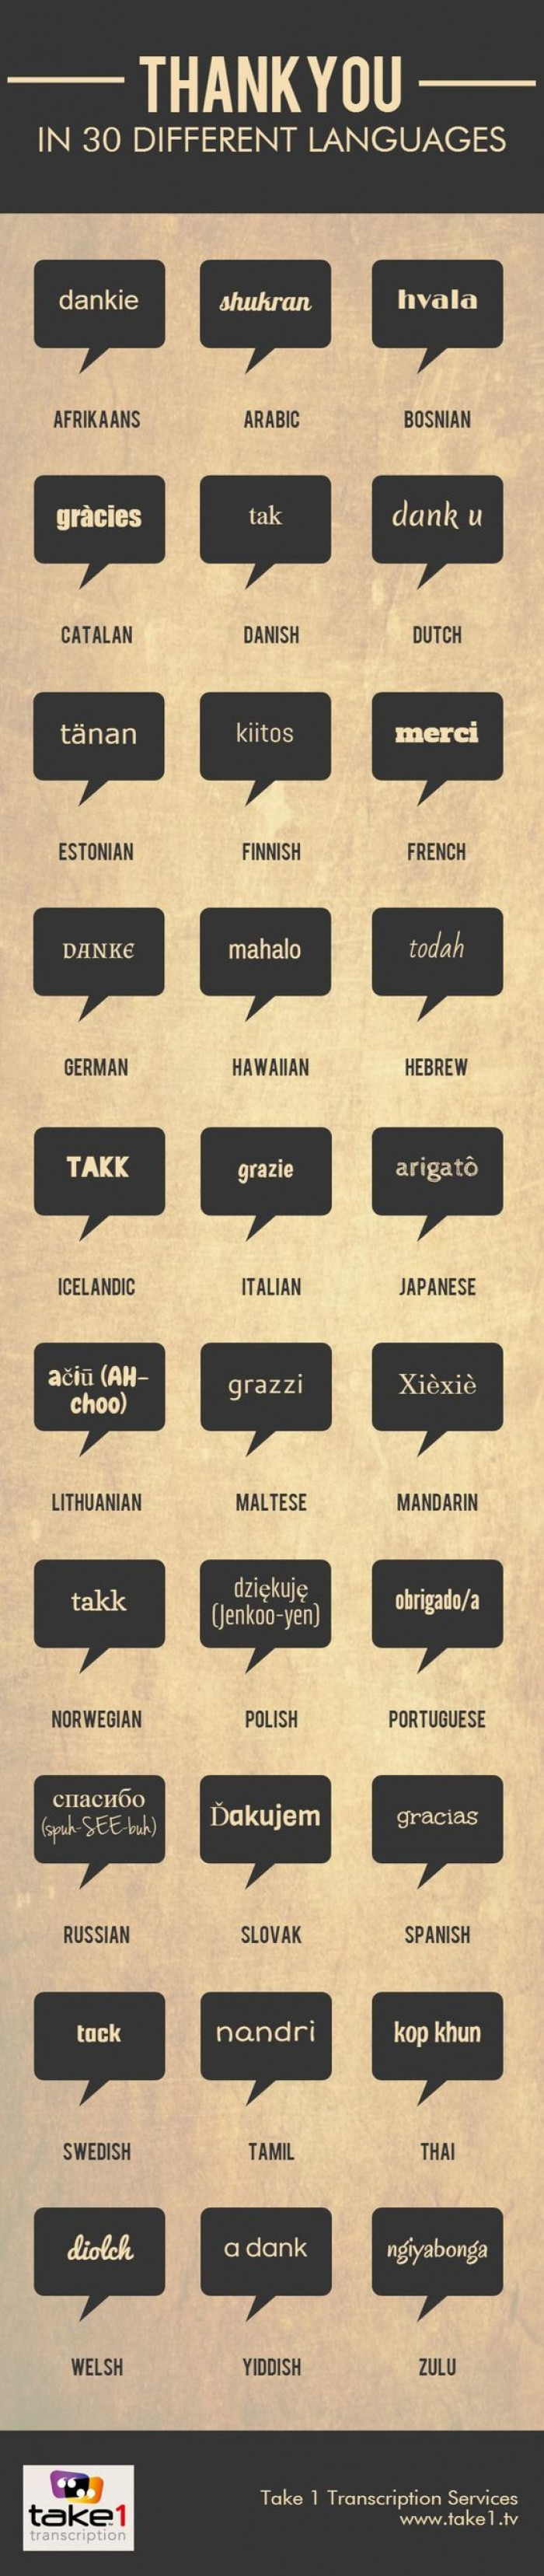 How To Say Thank You In 30 Different Languages